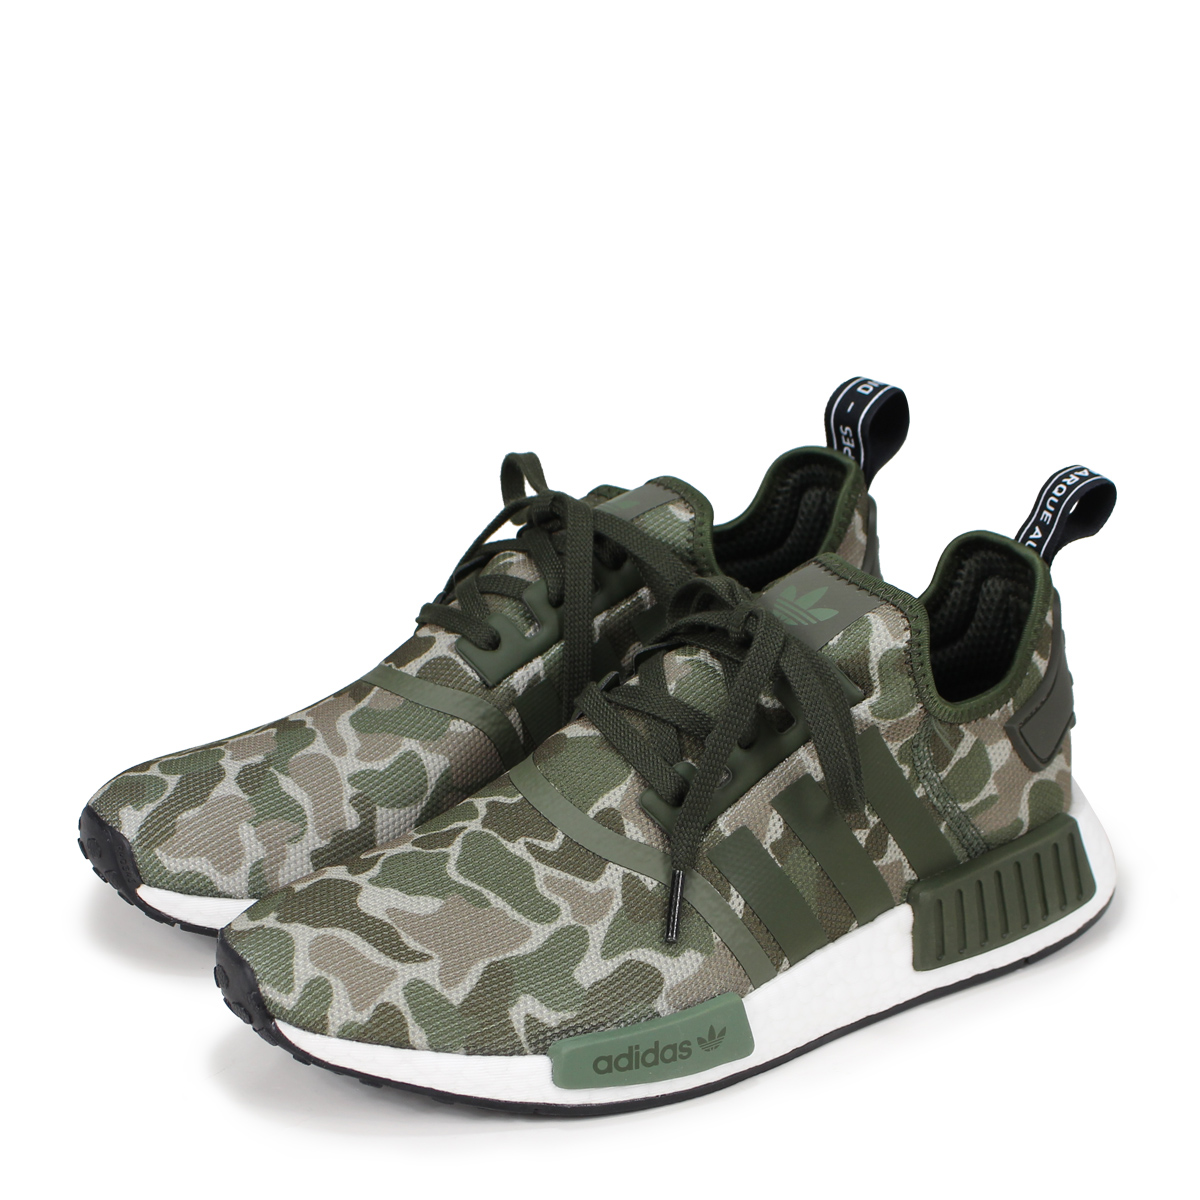 new style 28423 3c16f adidas Originals NMD R1 Adidas originals sneakers N M D nomad men D96617  green  load planned Shinnyu ...